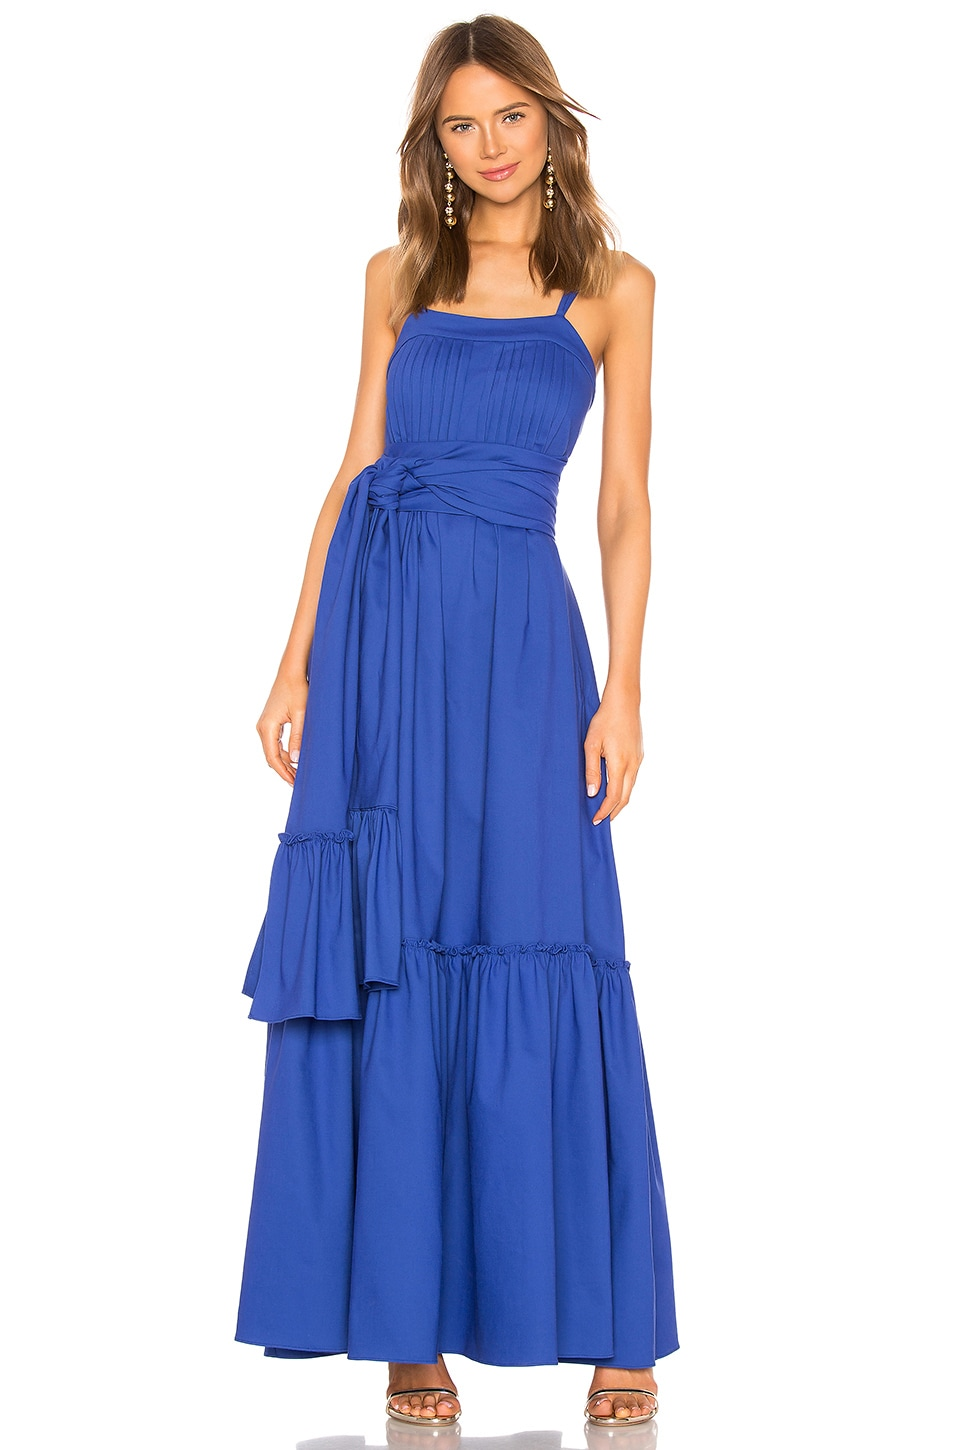 Alexis Ophira Dress in Cobalt Blue